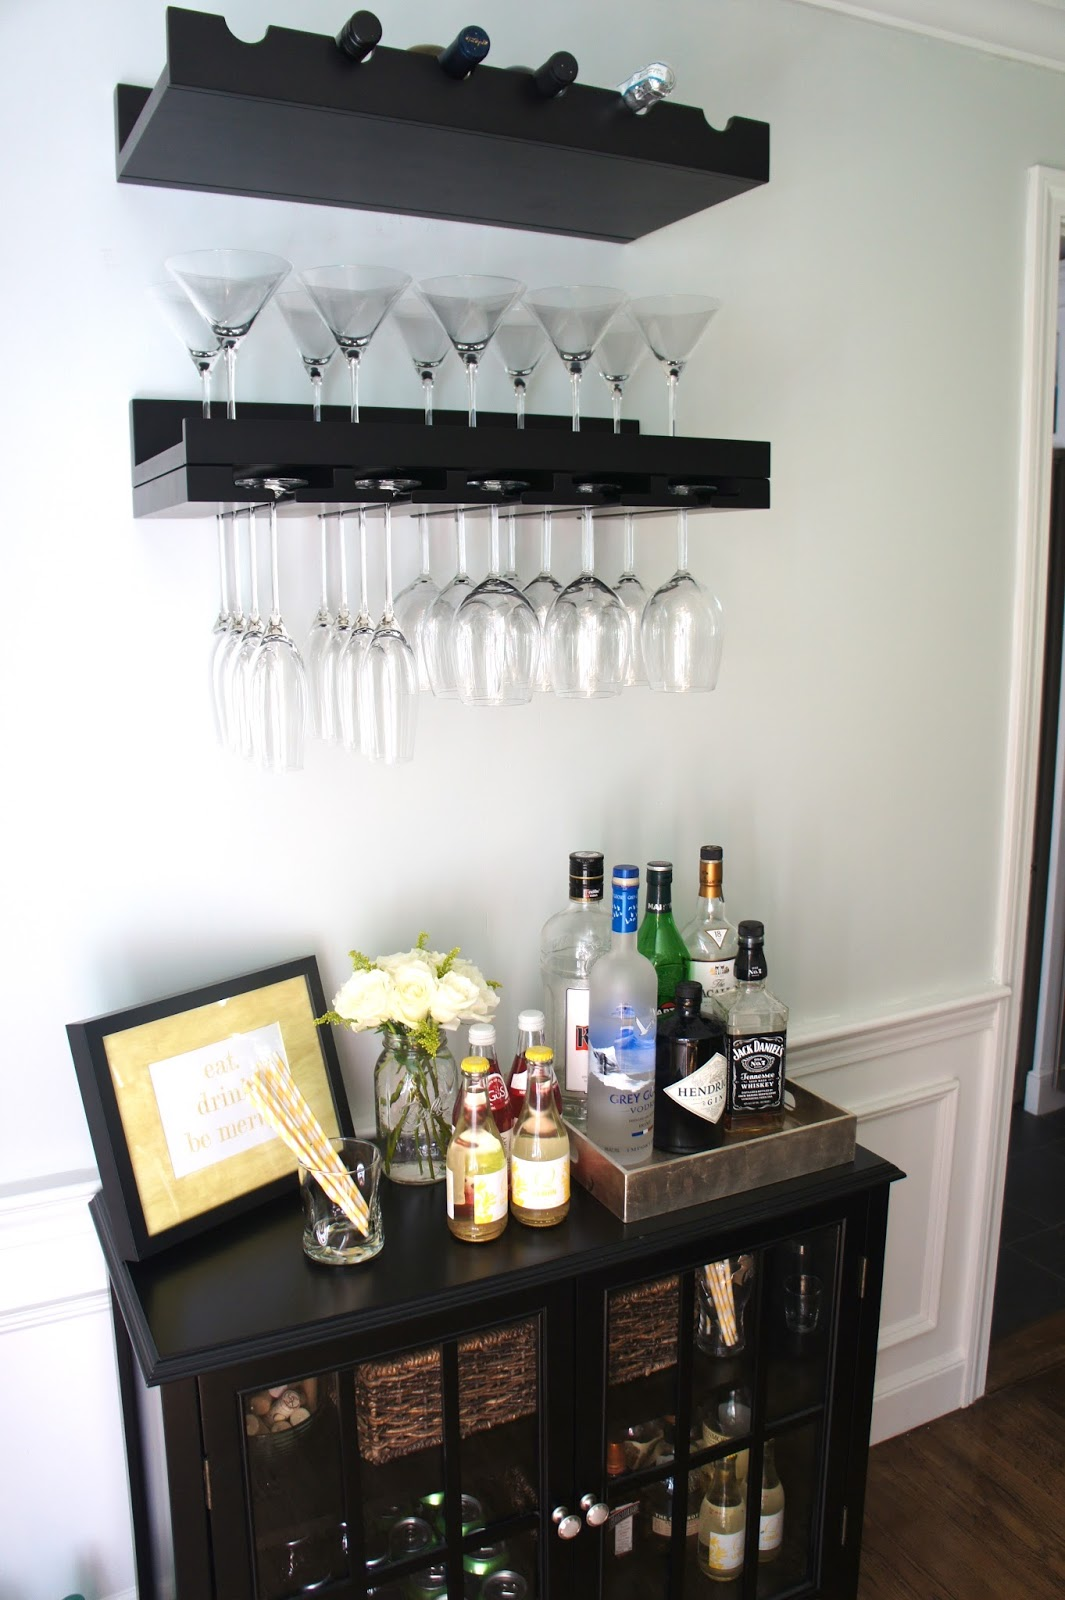 is how an organize home bar area looks like when it is quite small